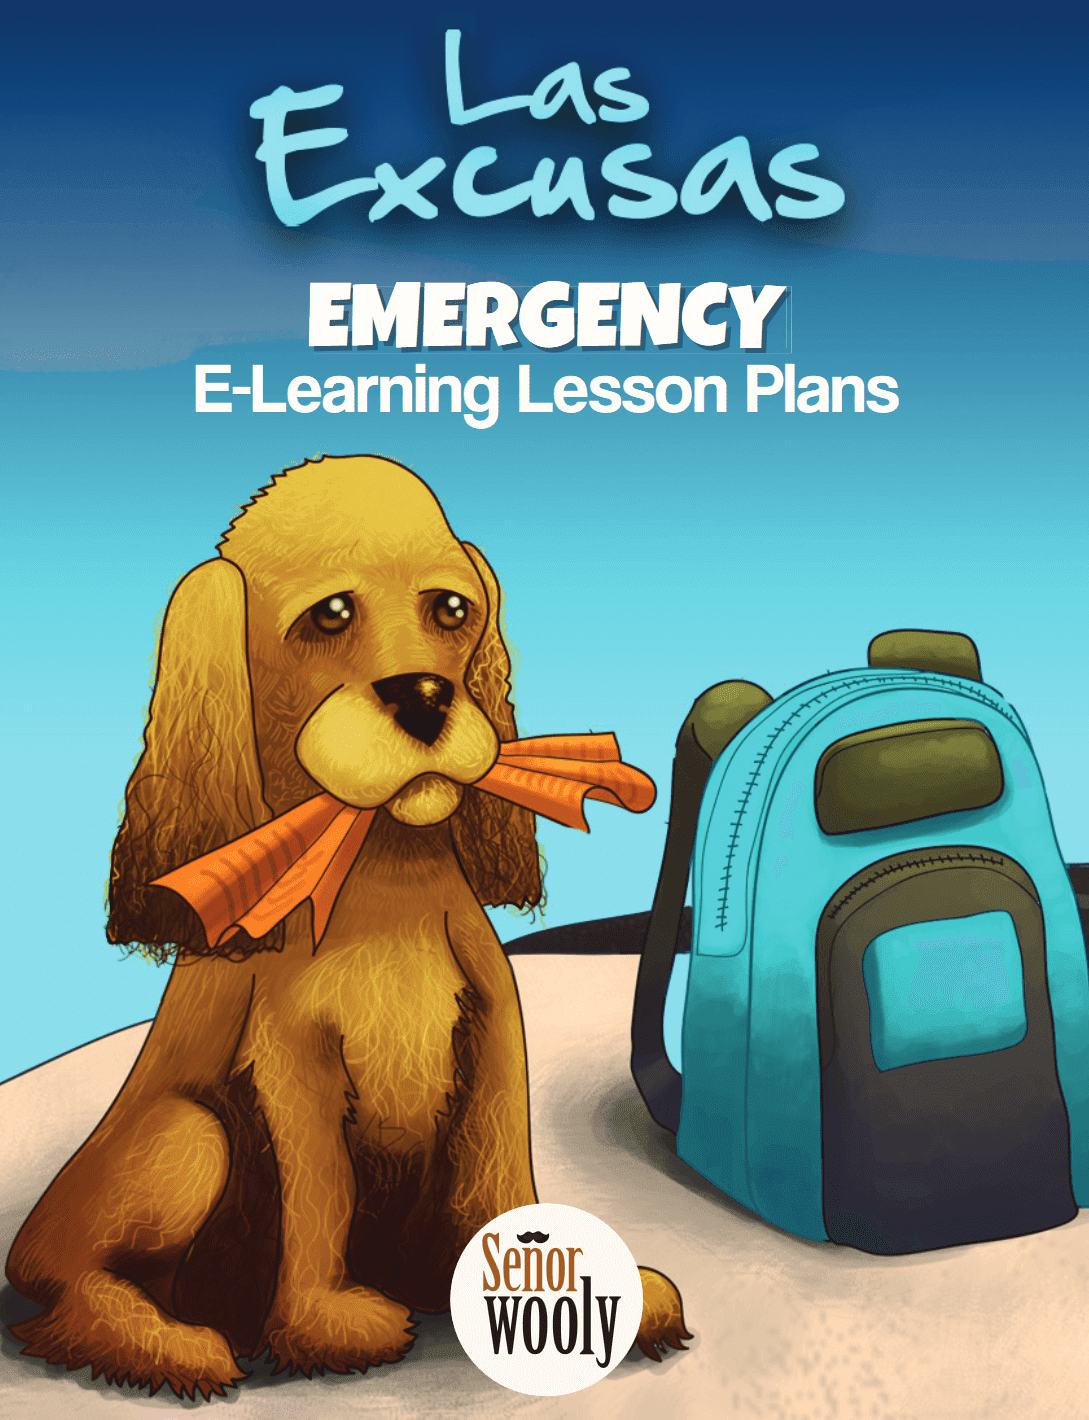 Las excusas Emergency e-learning lesson plans